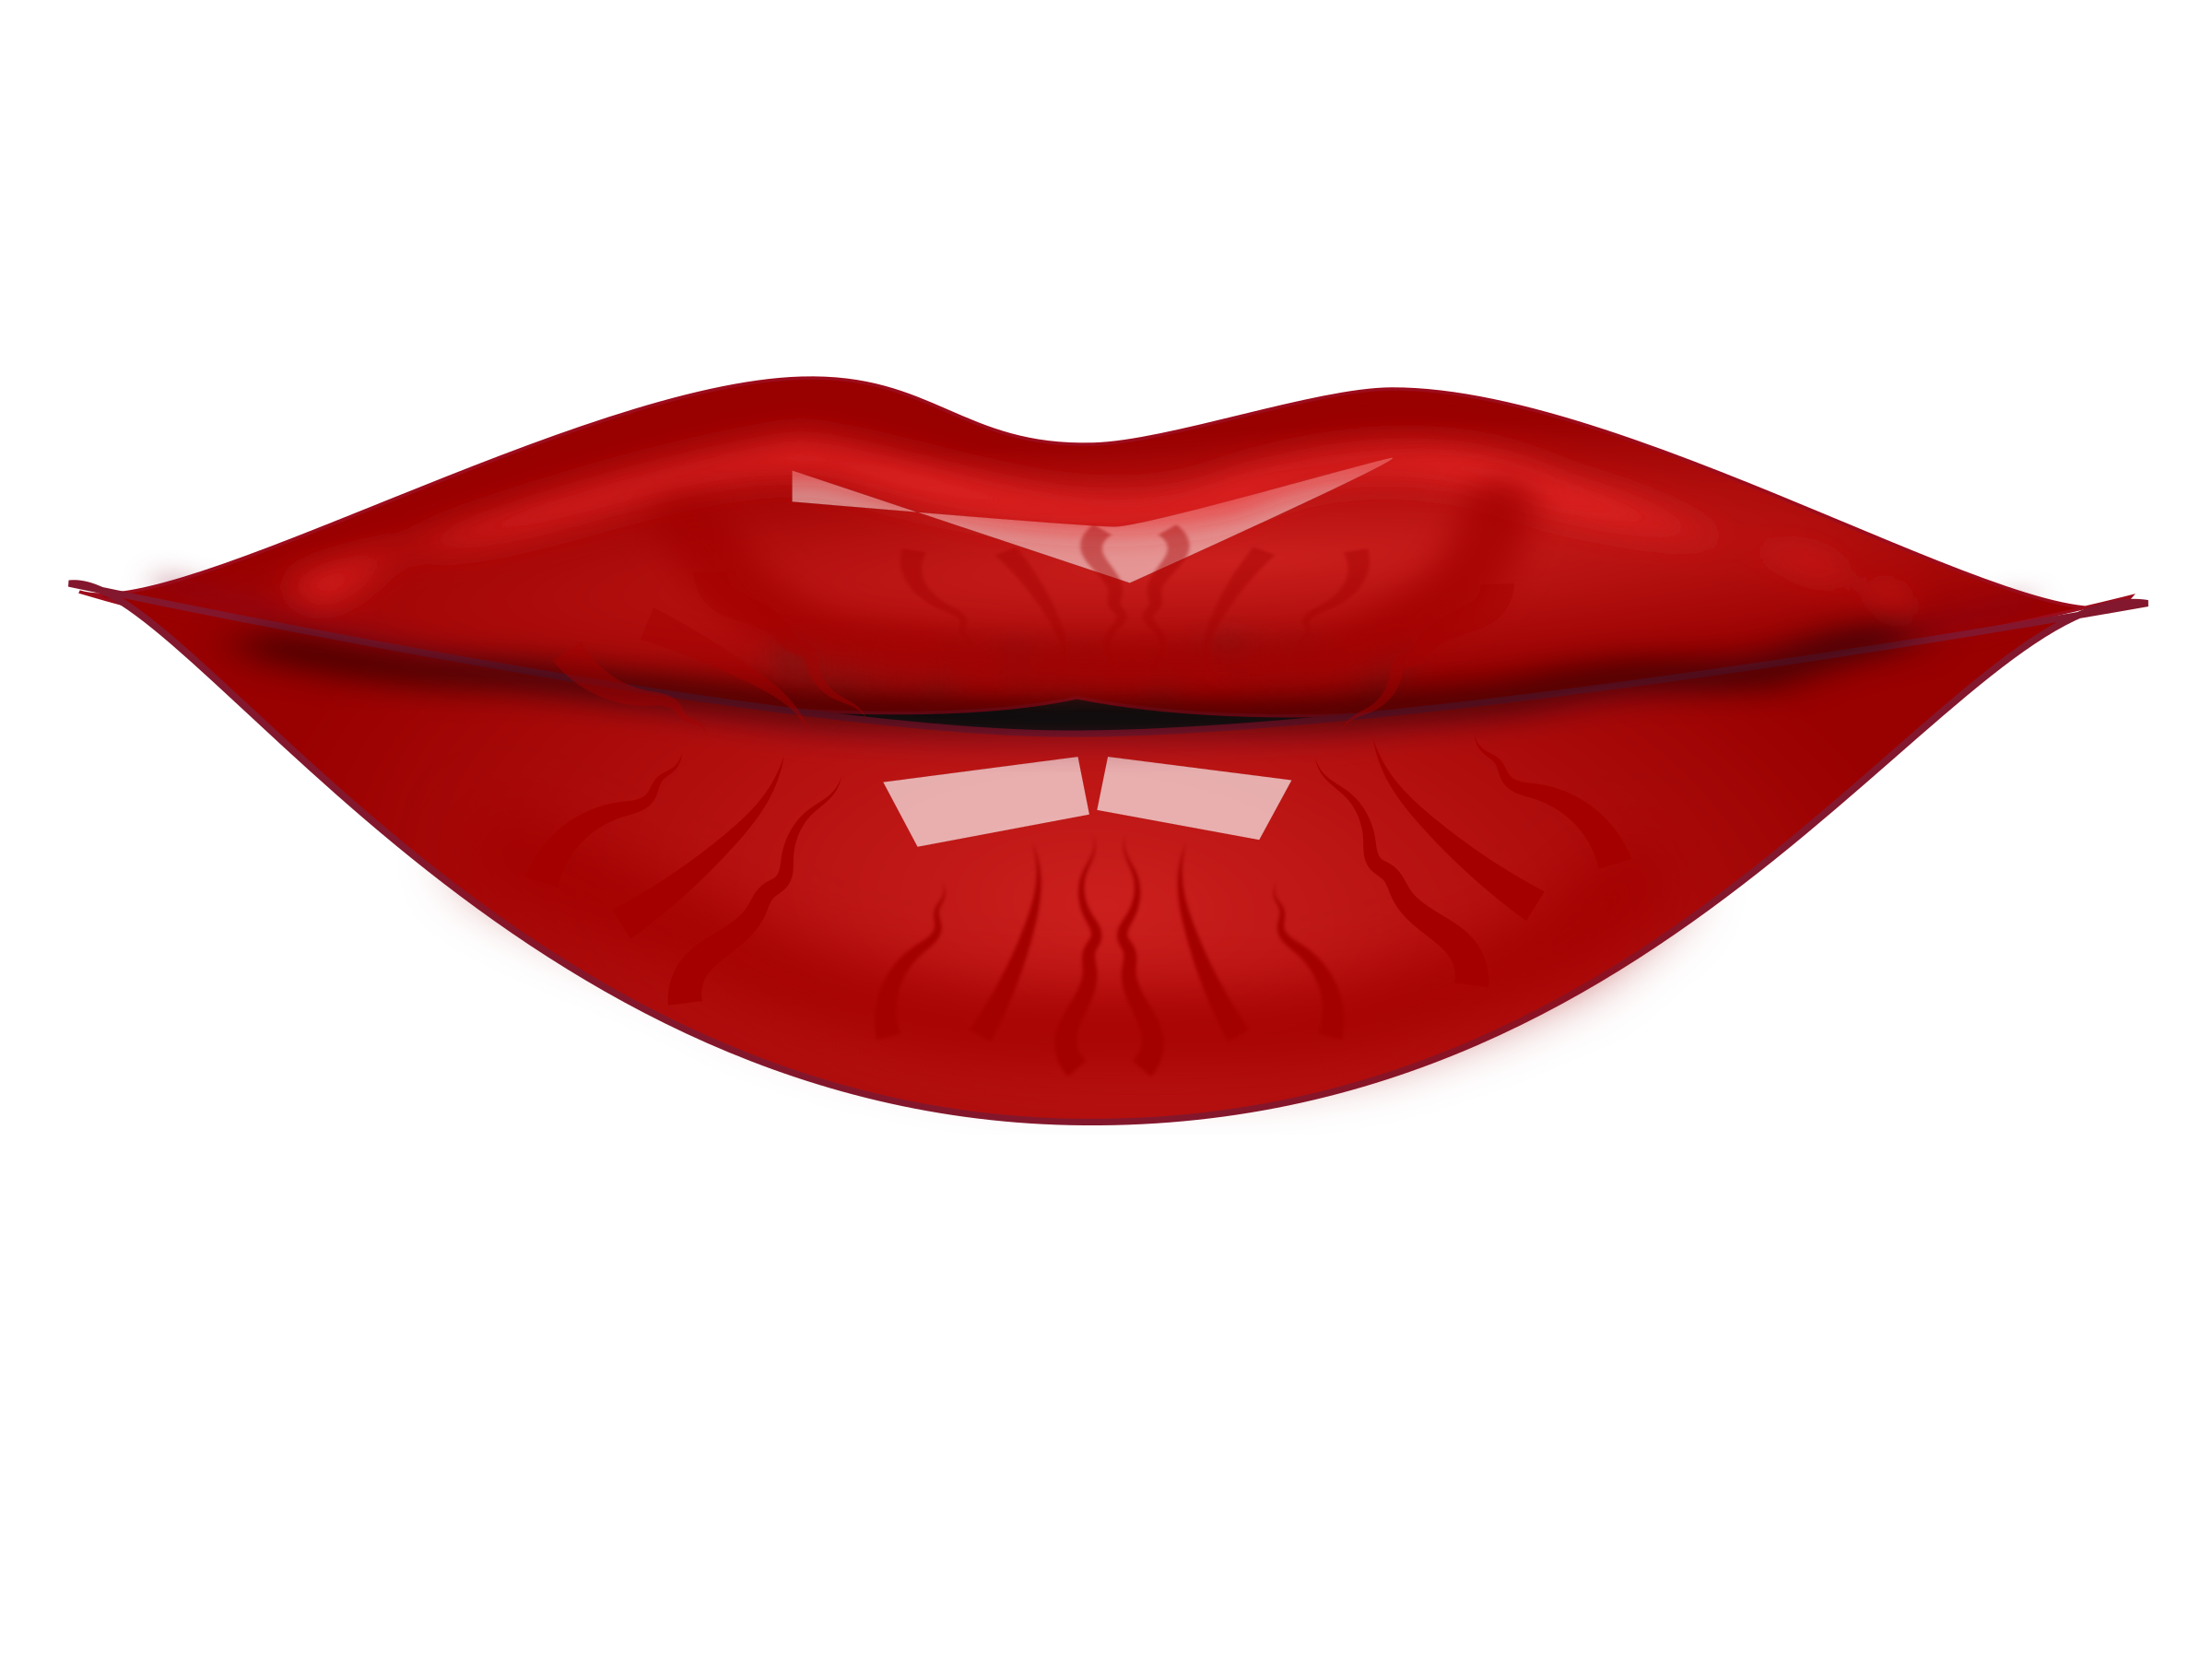 2400x1800 Clipart Lips By Netalloy